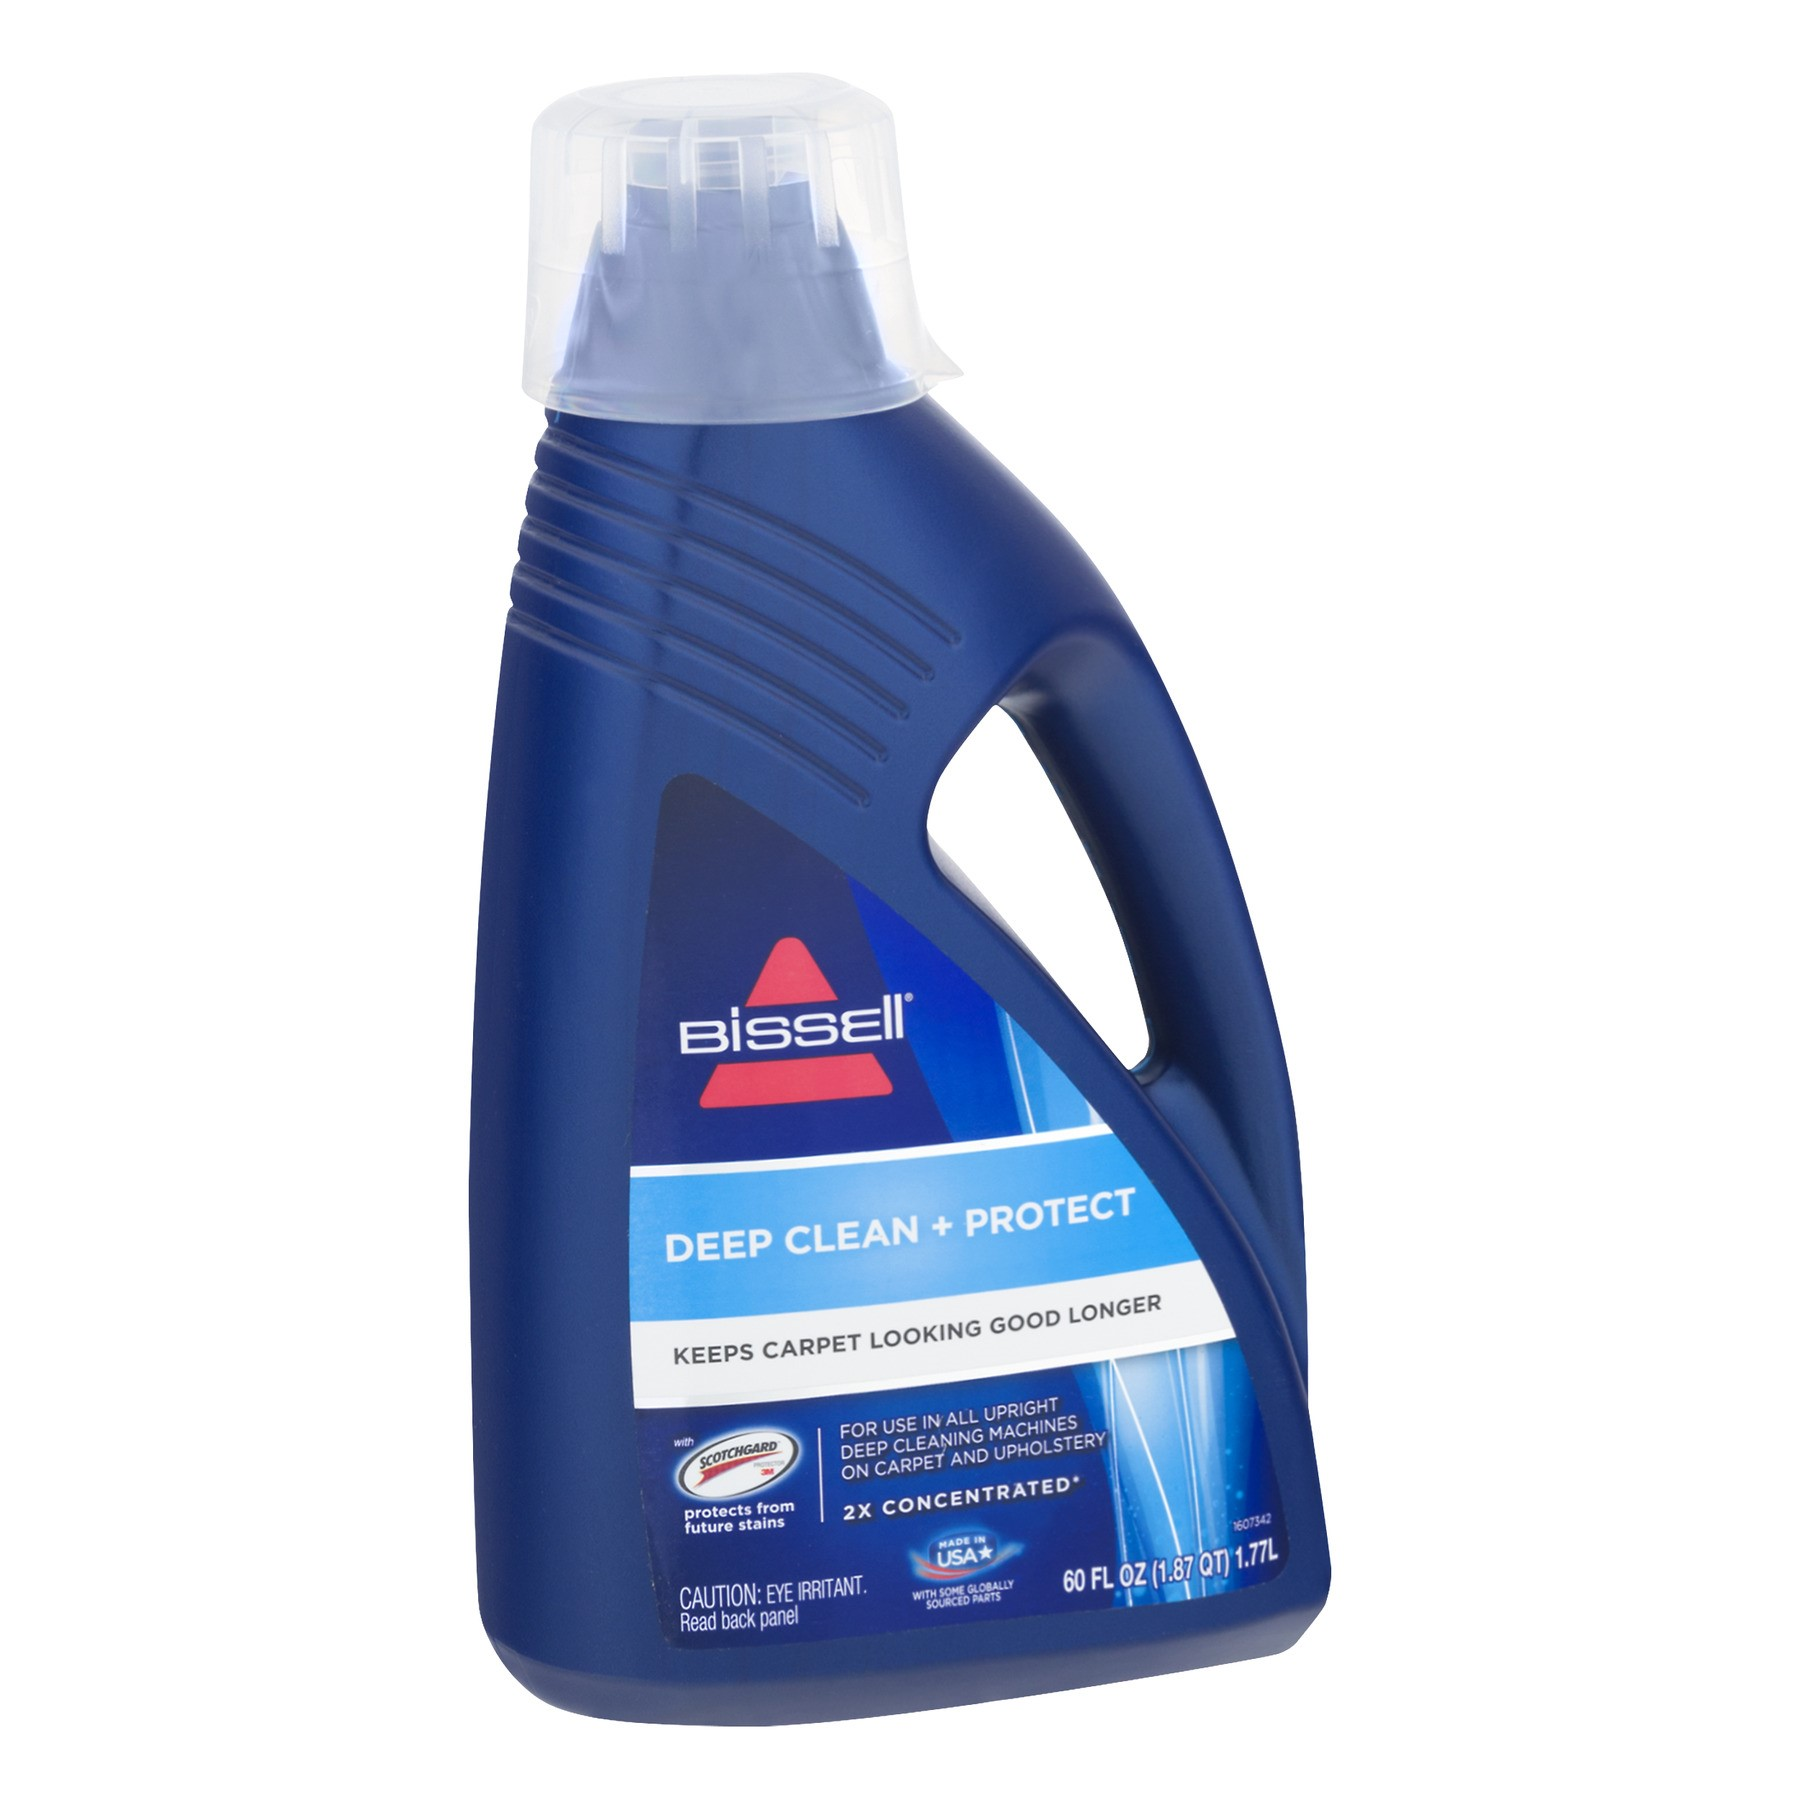 Bissell Carpet Upholstery Fiber Cleansing Advanced Formula 60 Oz